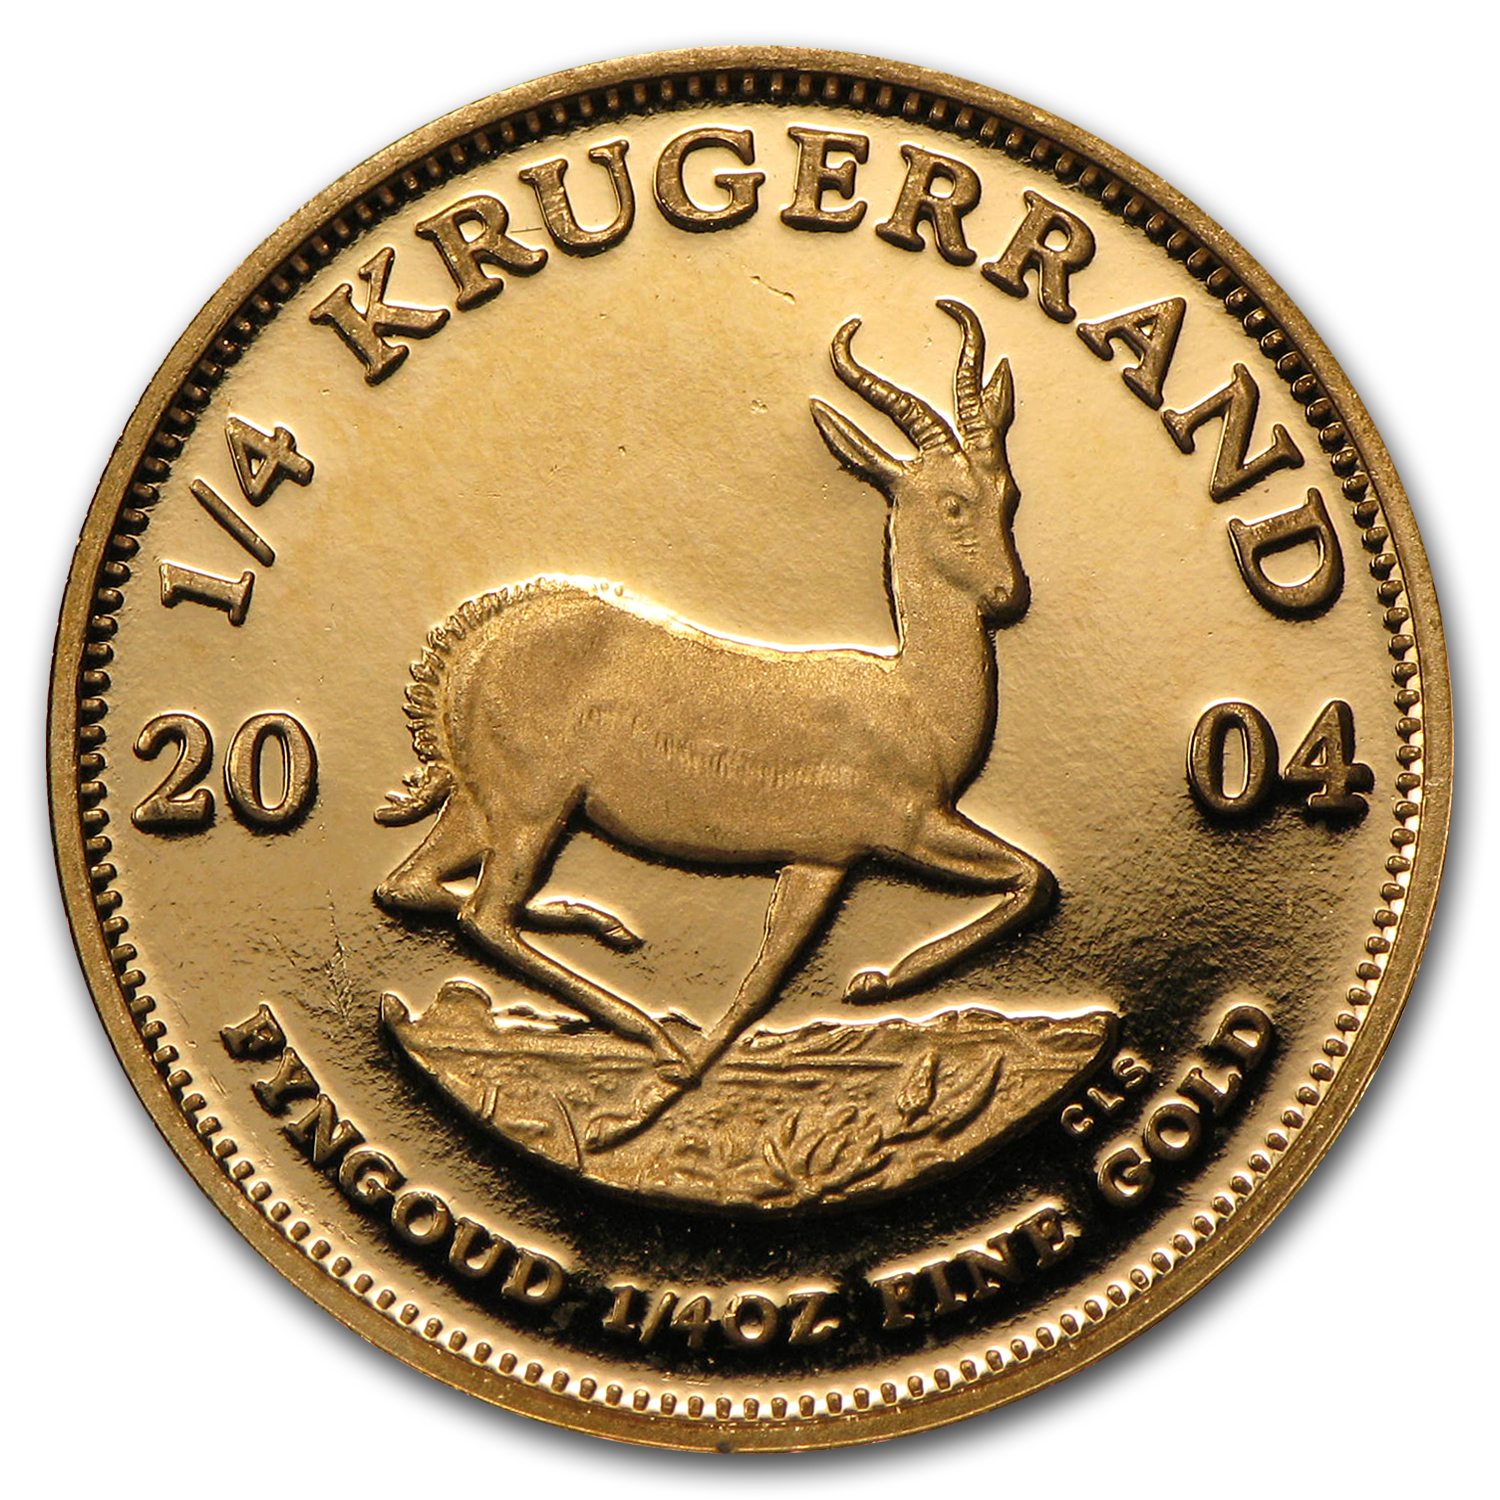 2004 1/4 oz Gold South African Krugerrand (Proof)